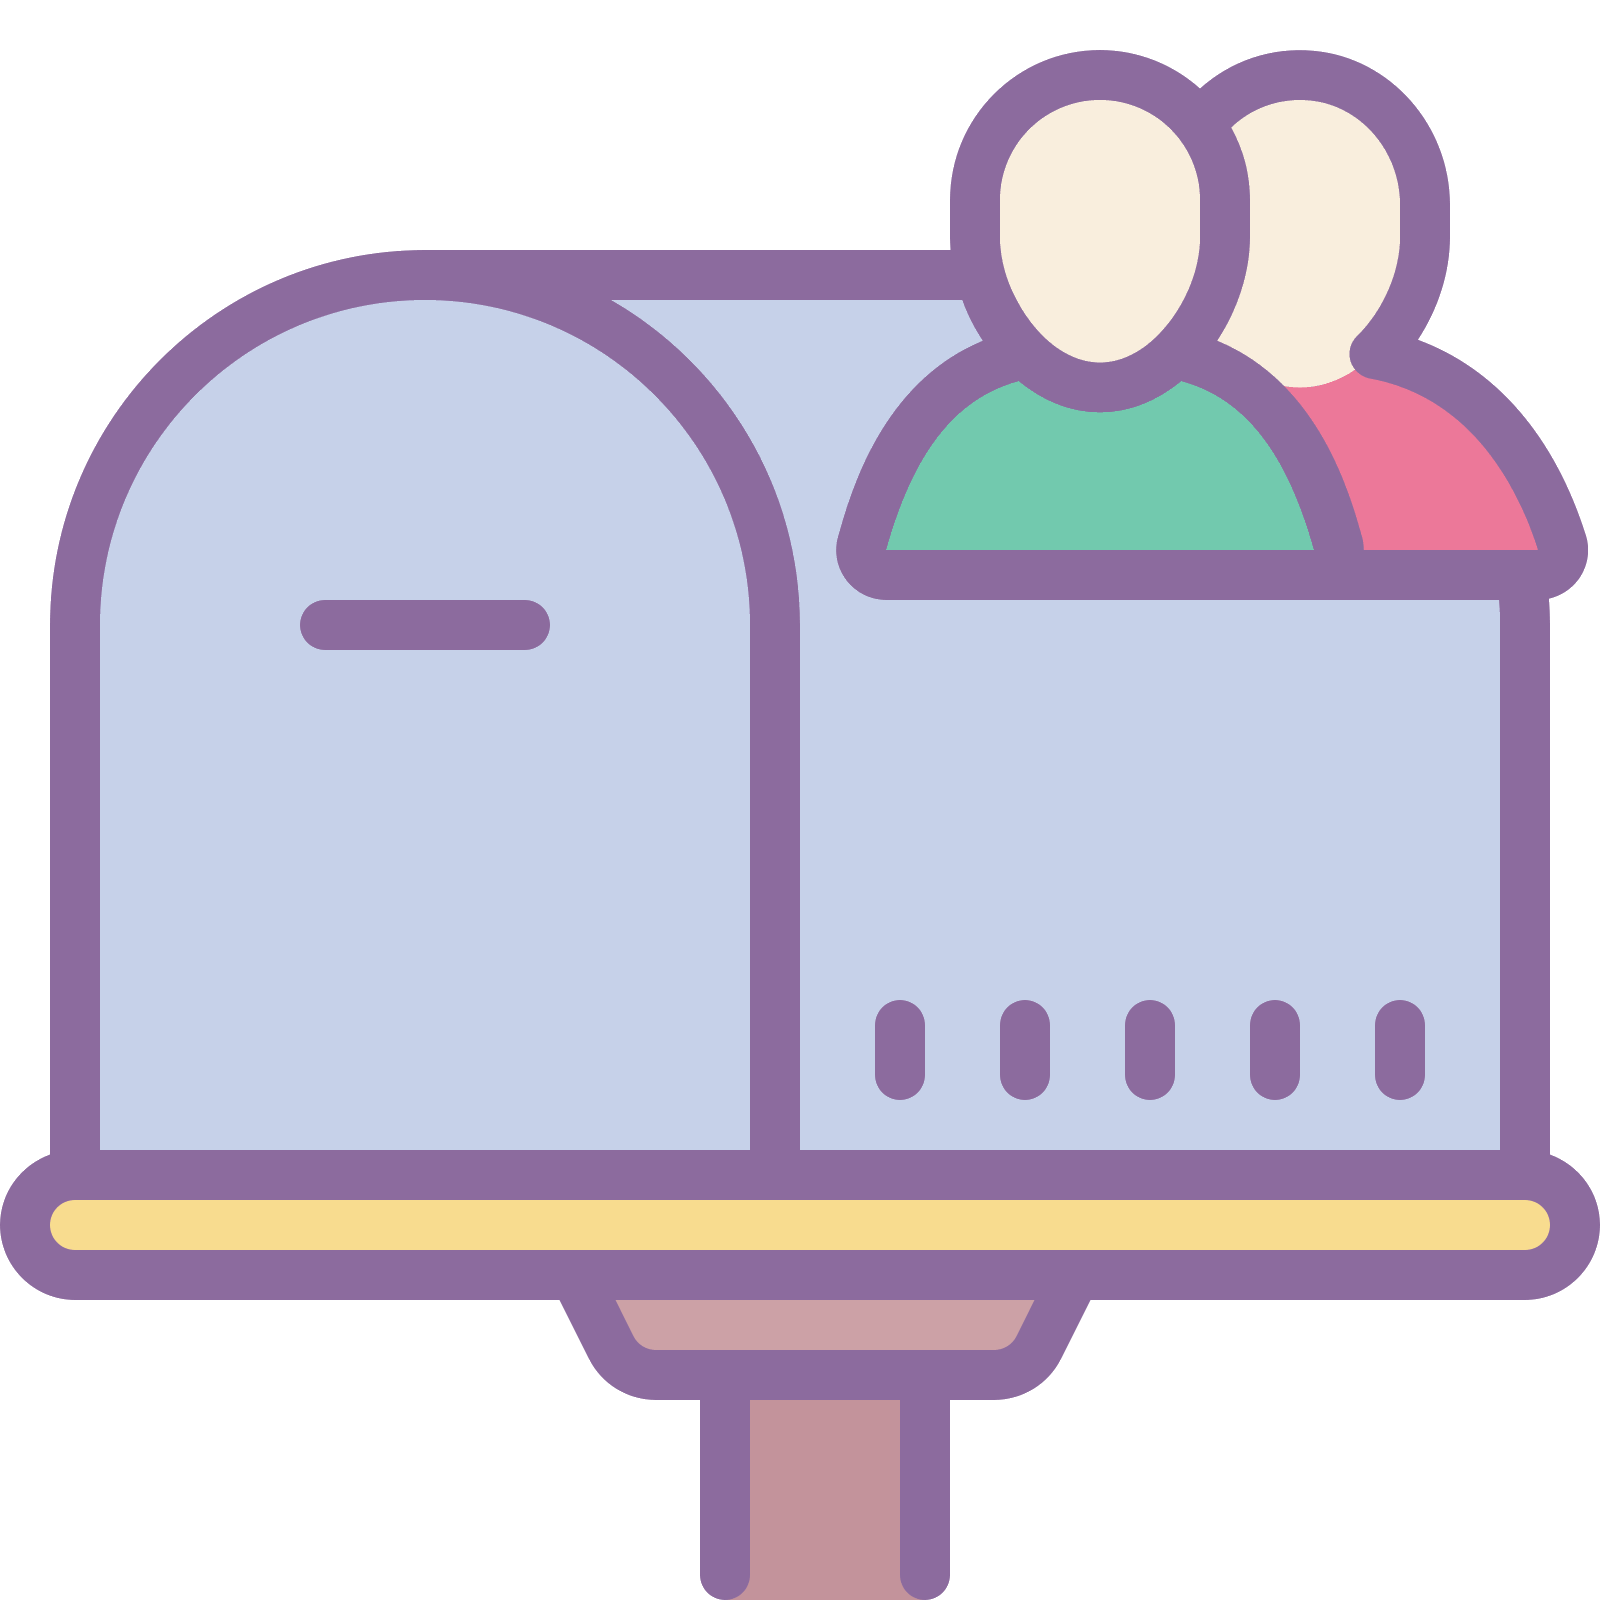 Mailbox clipart buzon. Shared png icon